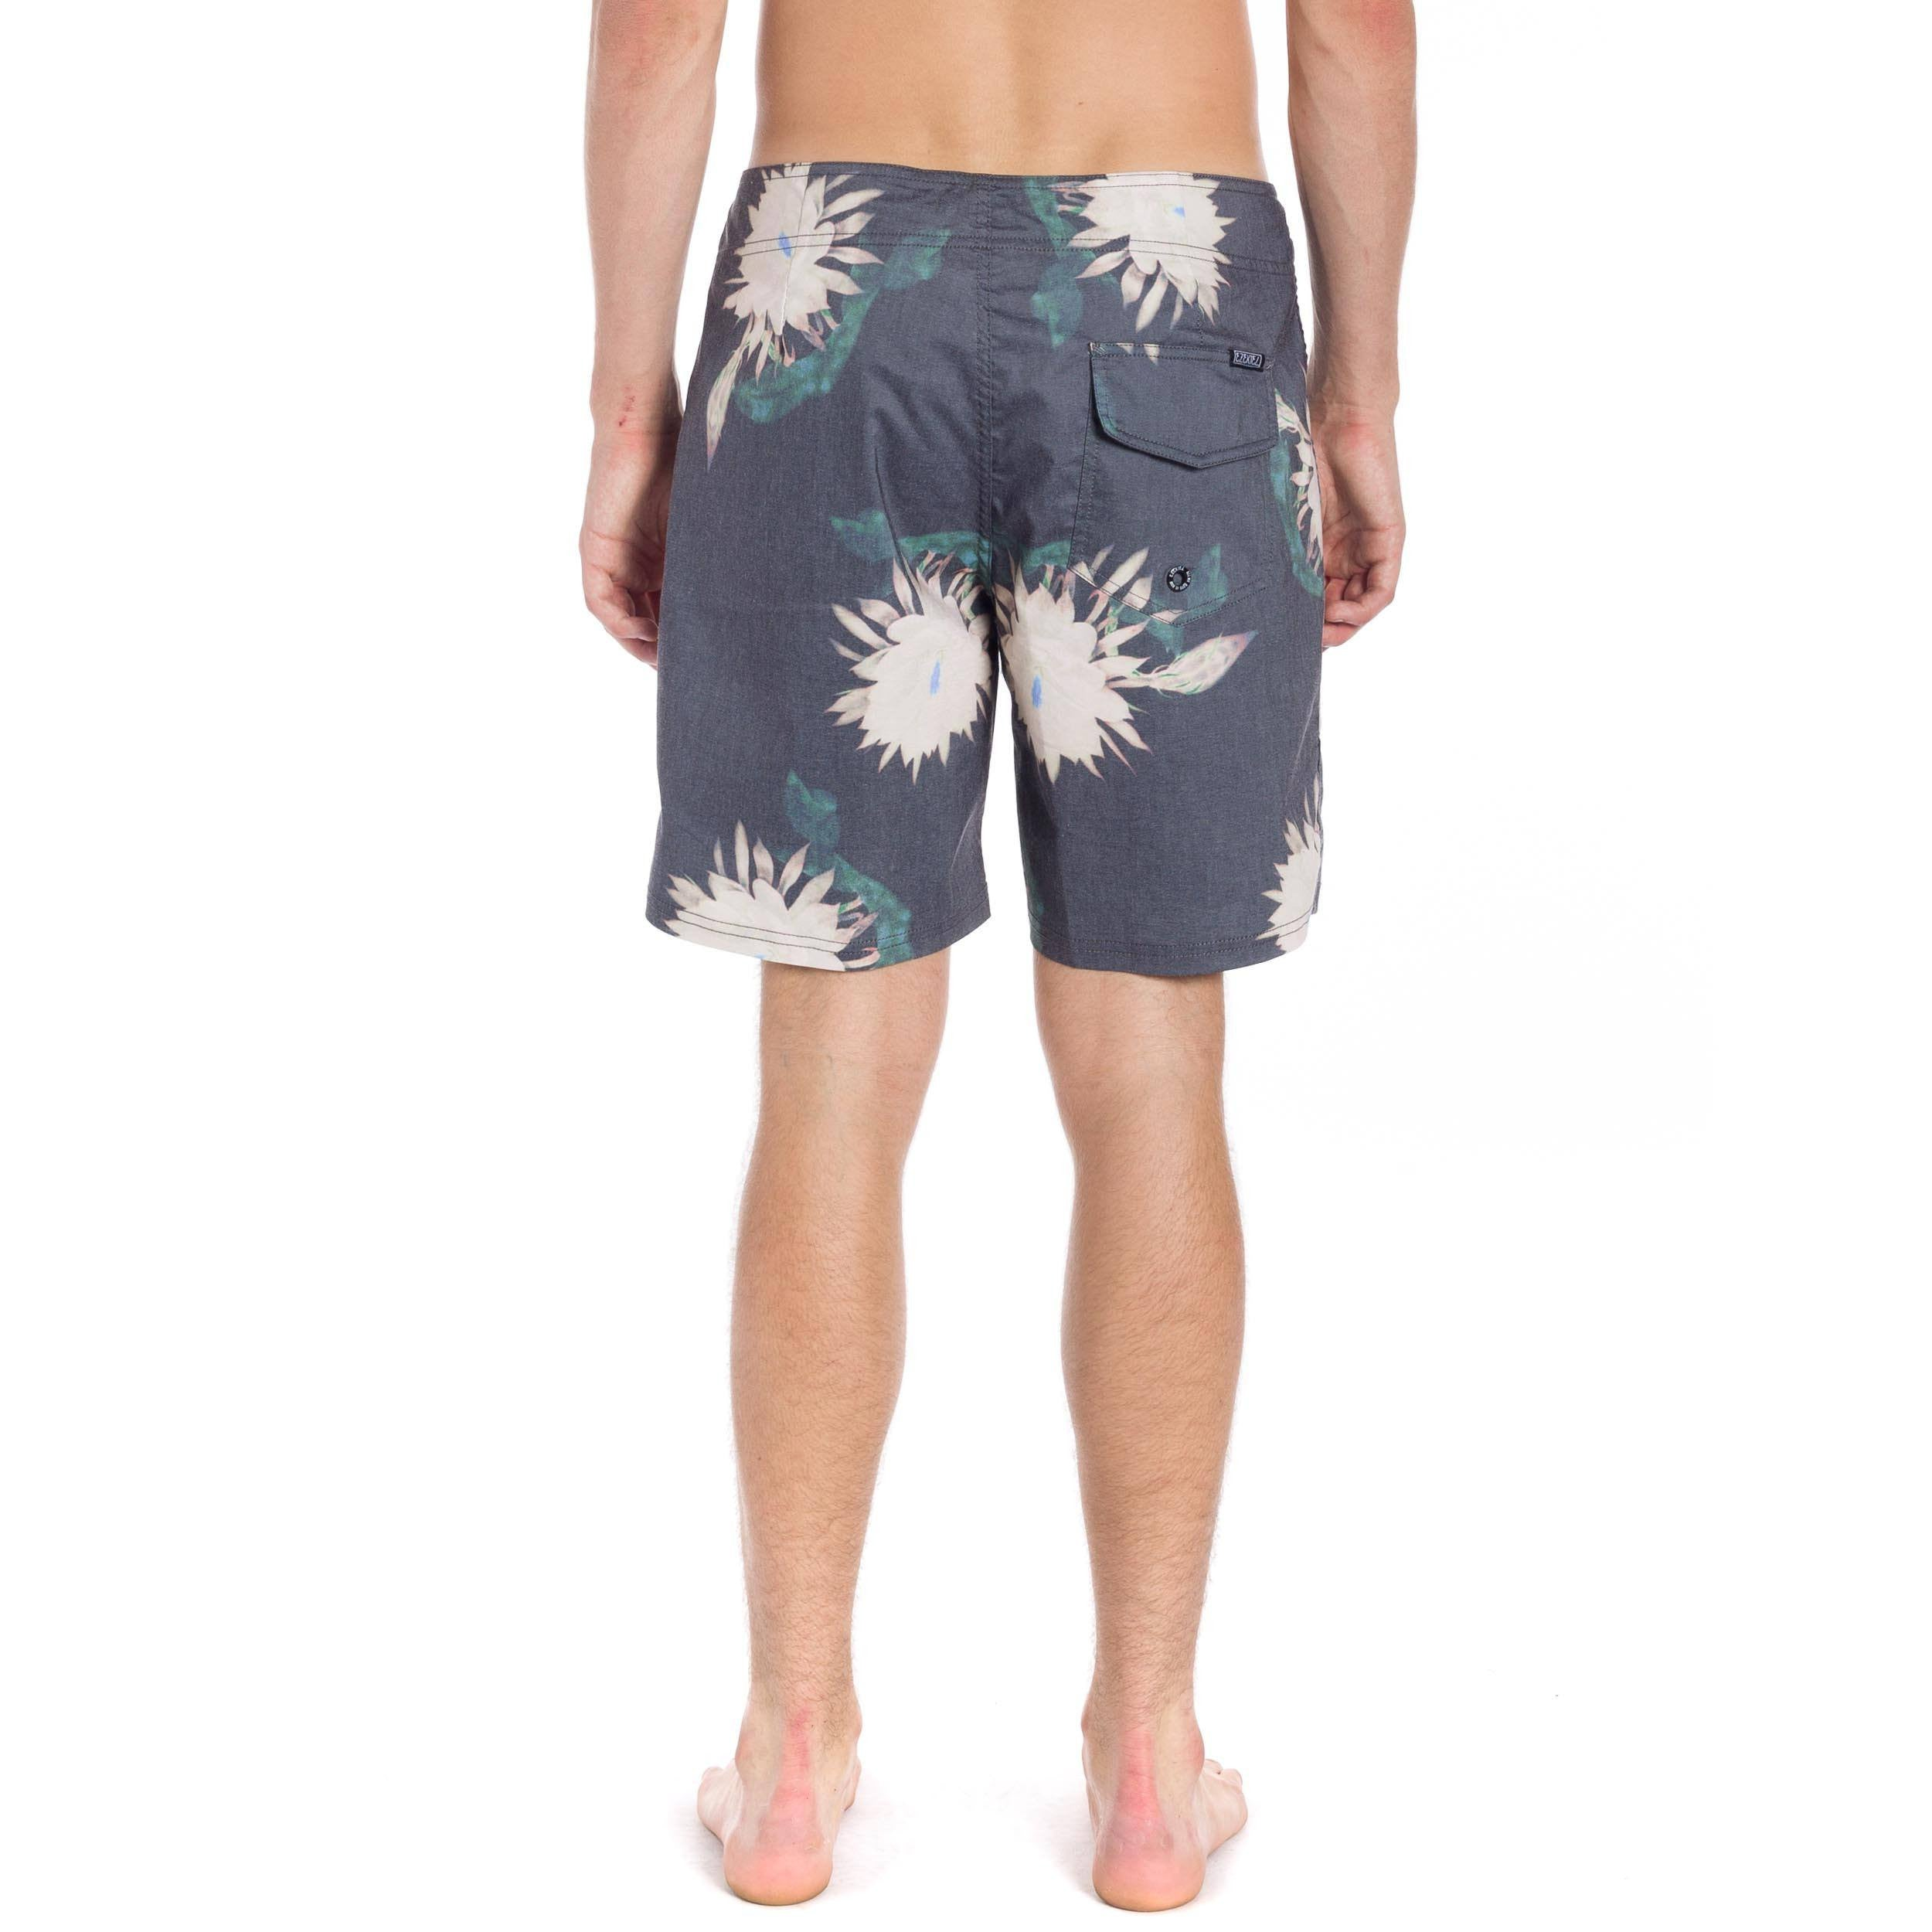 "Wander 18"" Boardshort - Black"